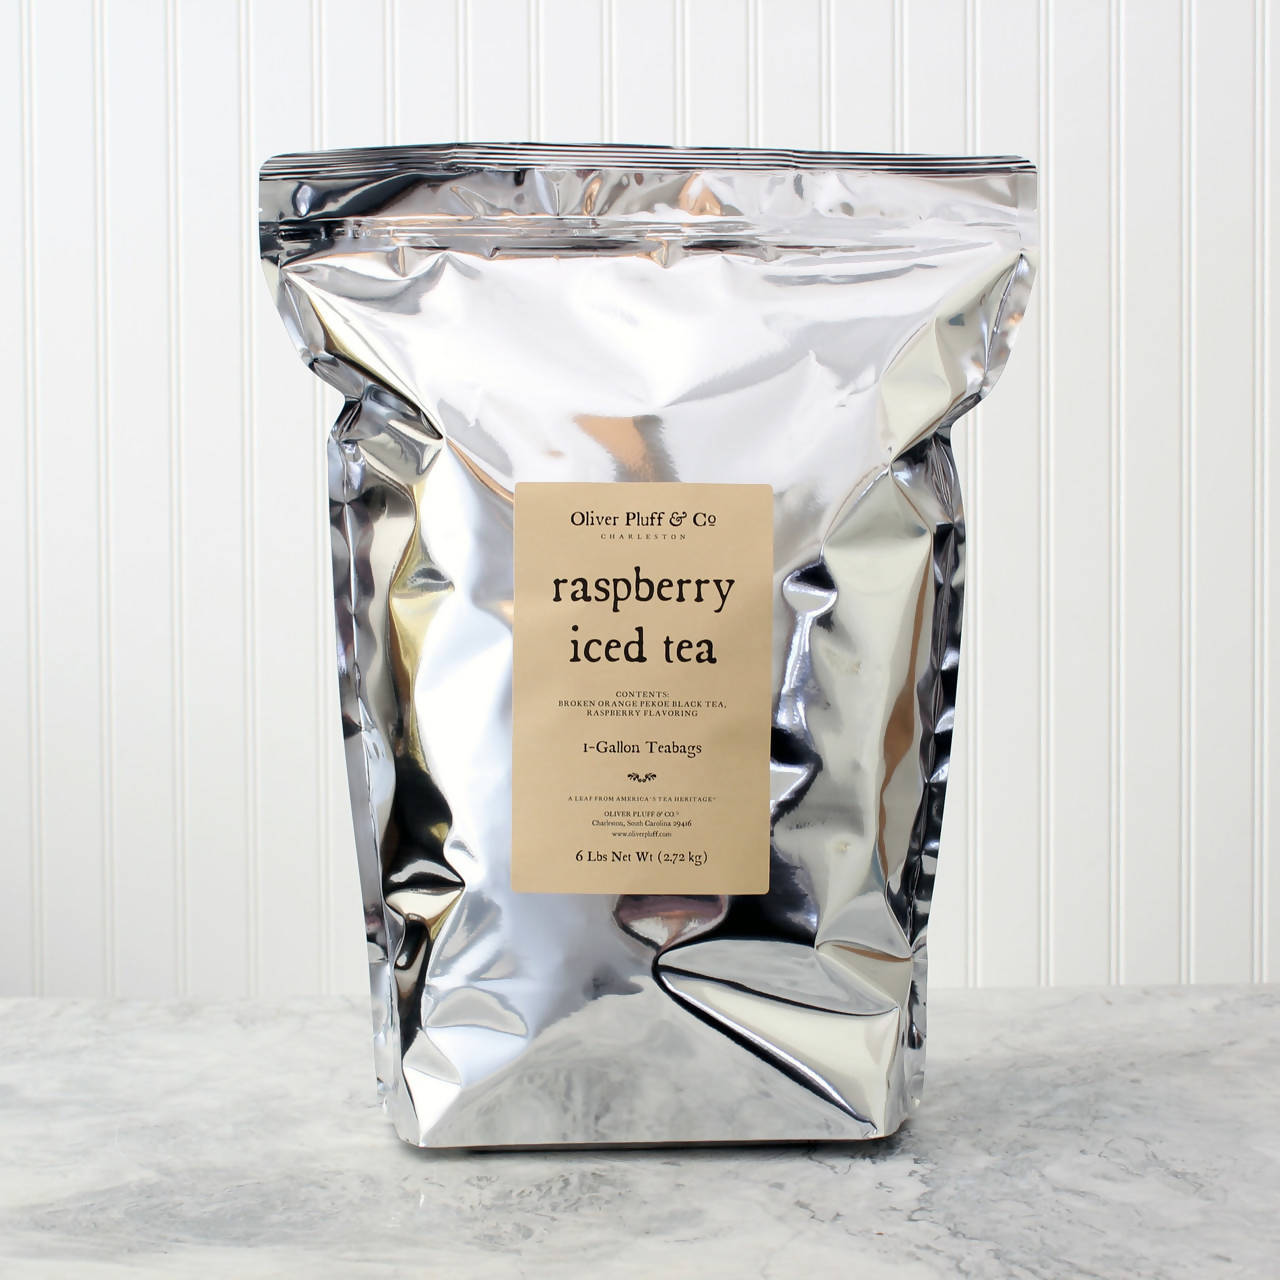 Raspberry Iced Tea - 96 One-Gallon Teabags